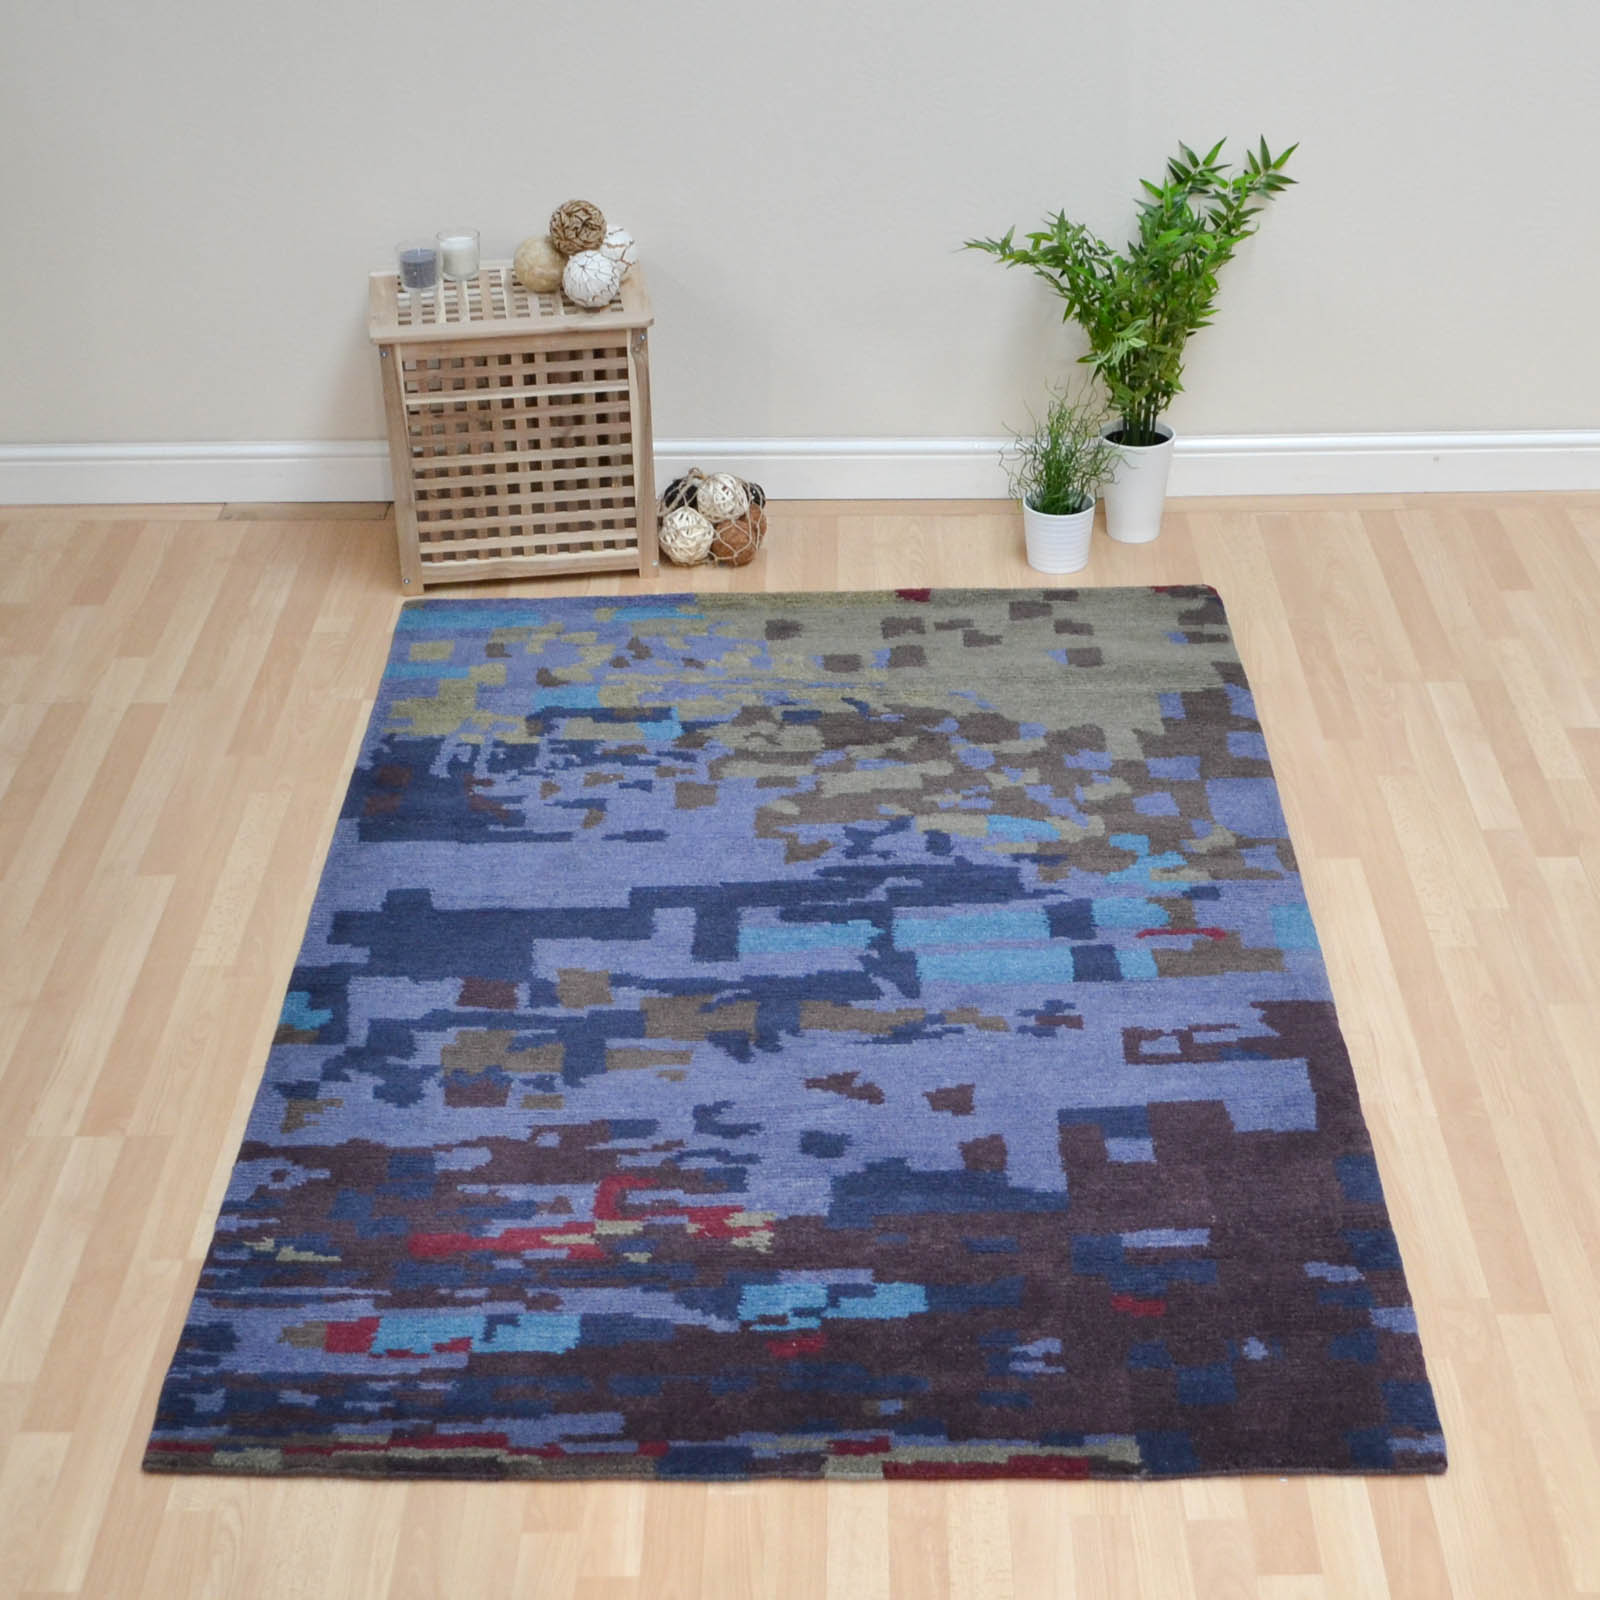 Kodari Mist Rugs 34208 Blue Purple Hand Knotted Wool Rugs by Brink & Campman